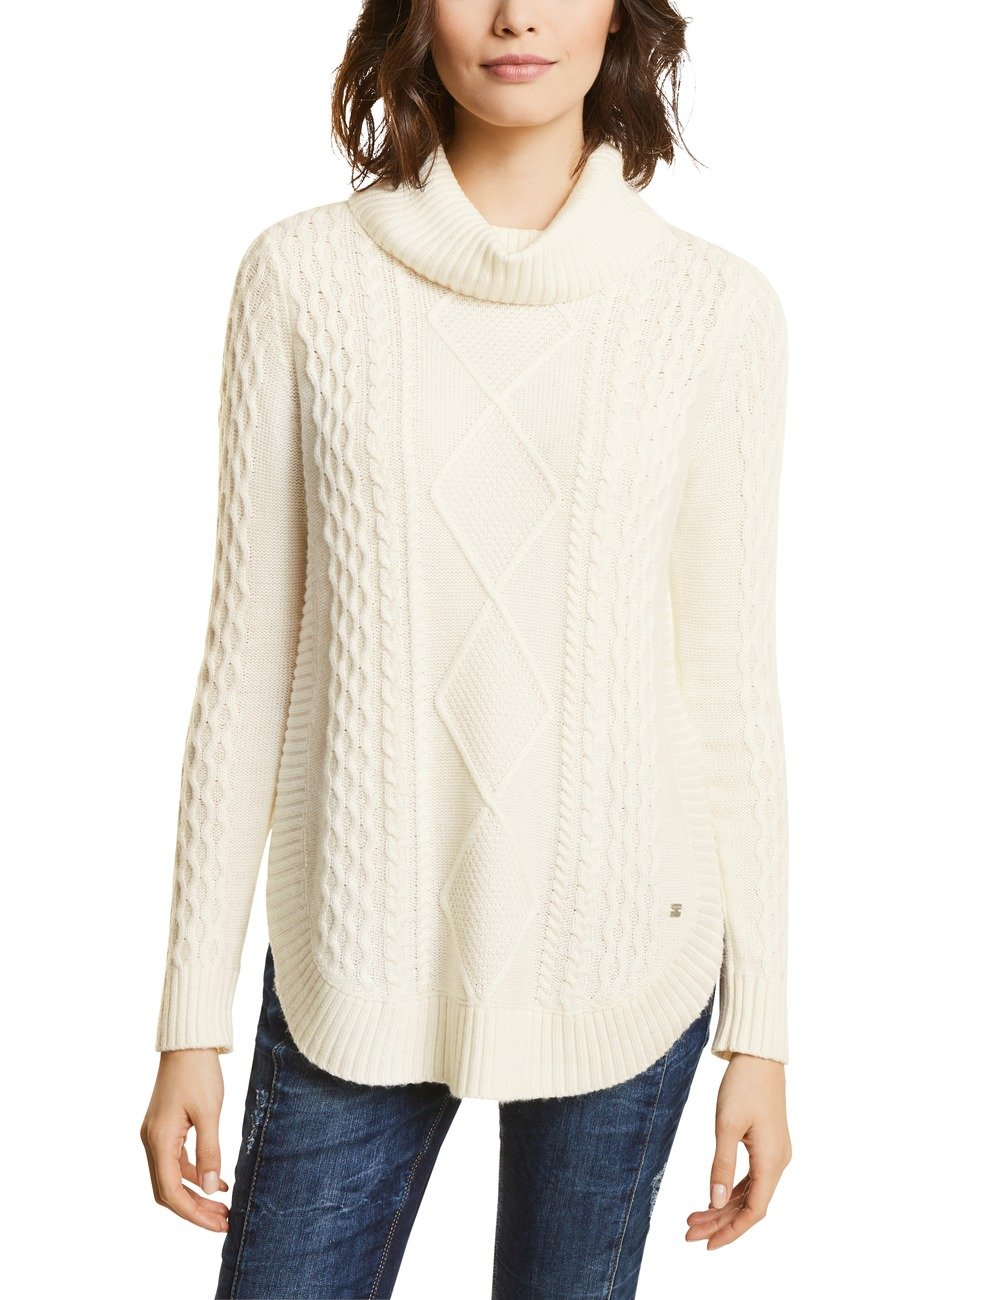 1010846taille Cable White Street One Du Fabrican44Femme With Curved PullWeißoff Pullover Bottom QrWxoCBed